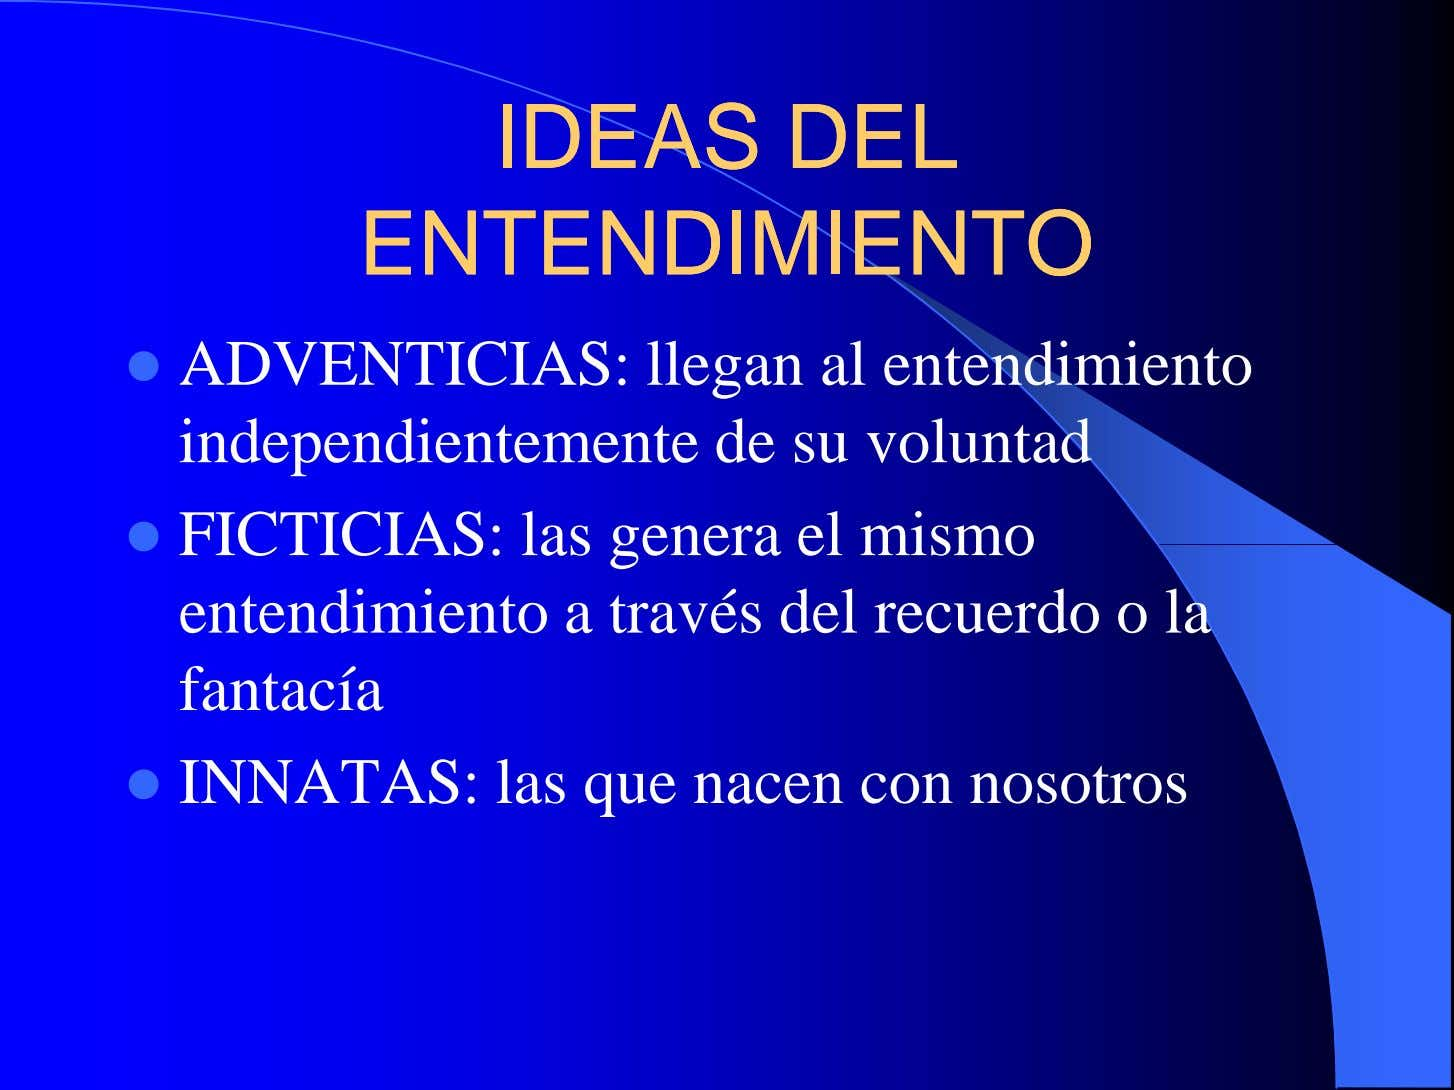 IDEASIDEAS DELDEL ENTENDIMIENTOENTENDIMIENTO ADVENTICIAS: llegan al entendimiento independientemente de su voluntad